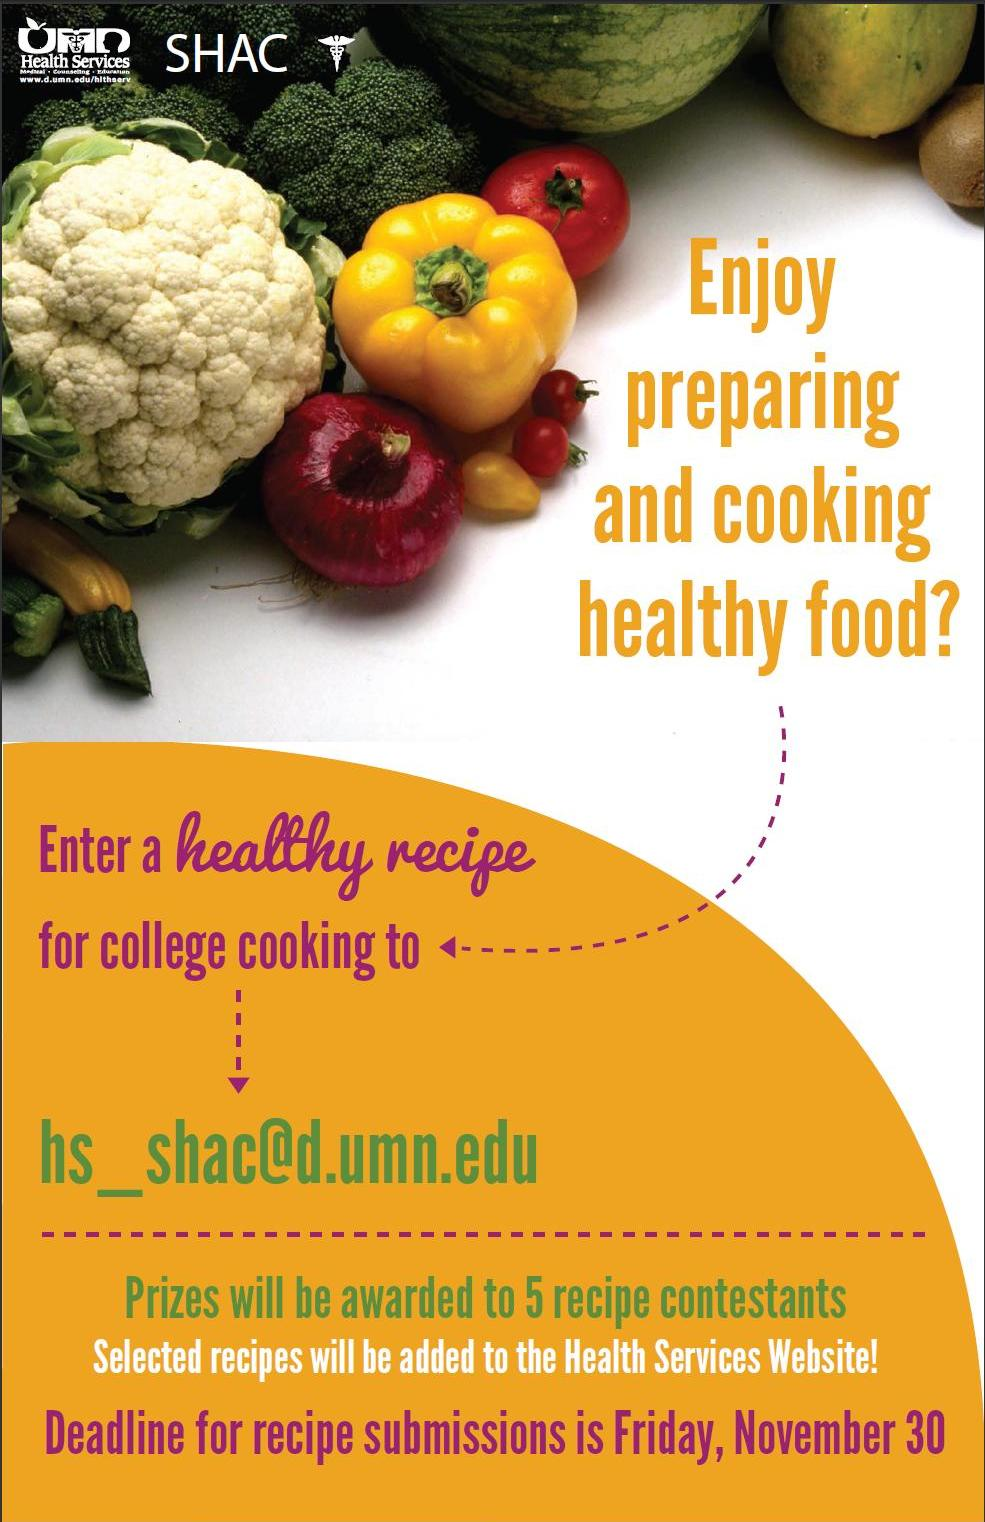 Umd foodnews recipe contest enter your healthy recipe for college look for the posters around campus forumfinder Gallery